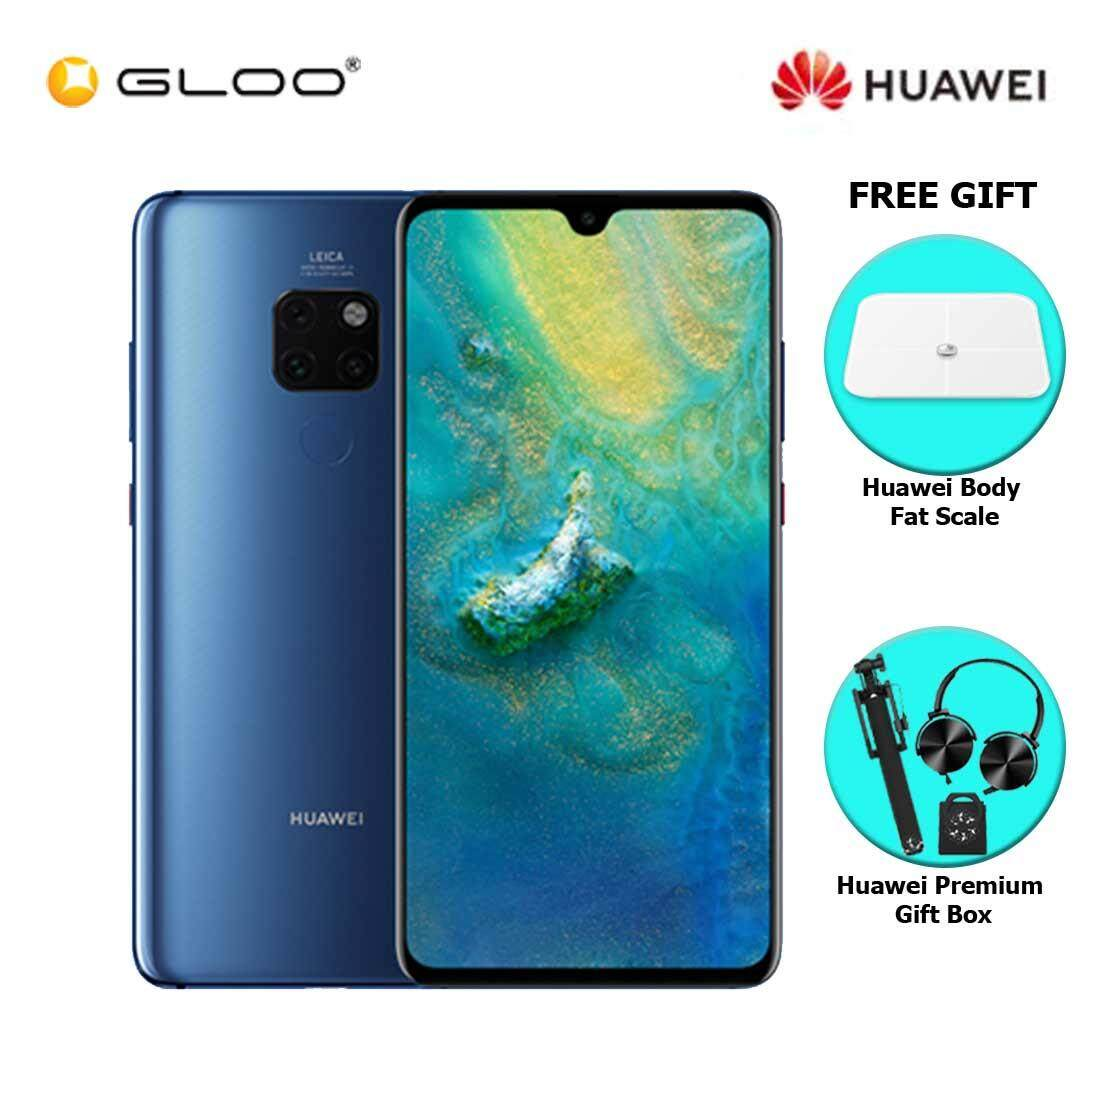 Huawei Mate 20 6GB+128GB Midnight Blue + FREE Huawei Body Fat Scale 6901443198375,Premium Gift Box (Headset/Selfie Stick/iRing)